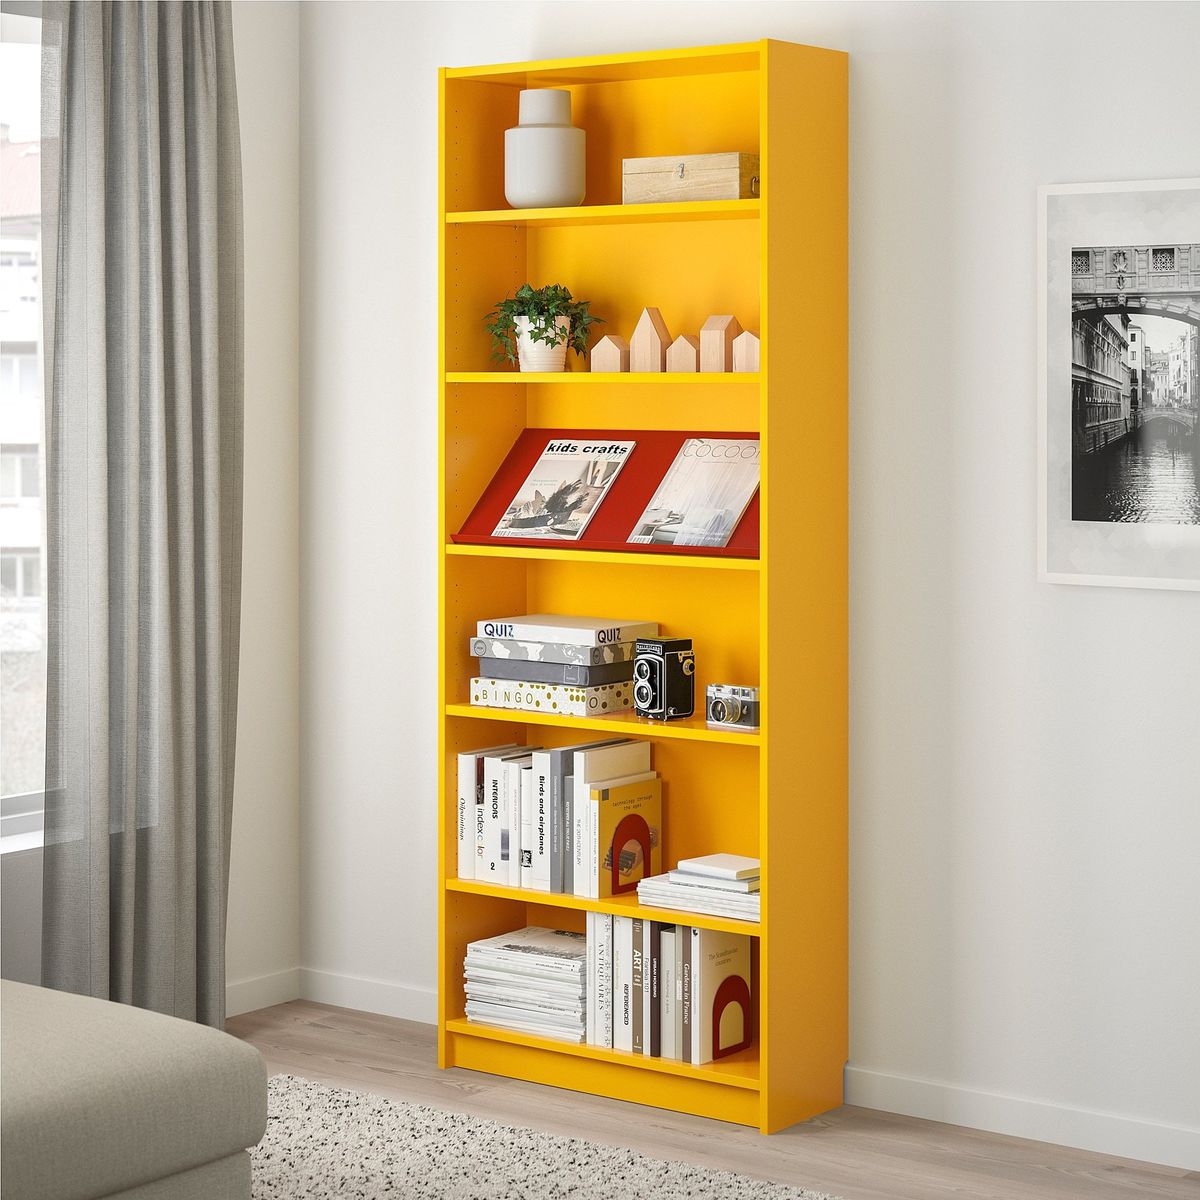 Ikea Billy Yellow Spring Furniture And Decor Best Yellow Finds Curbed